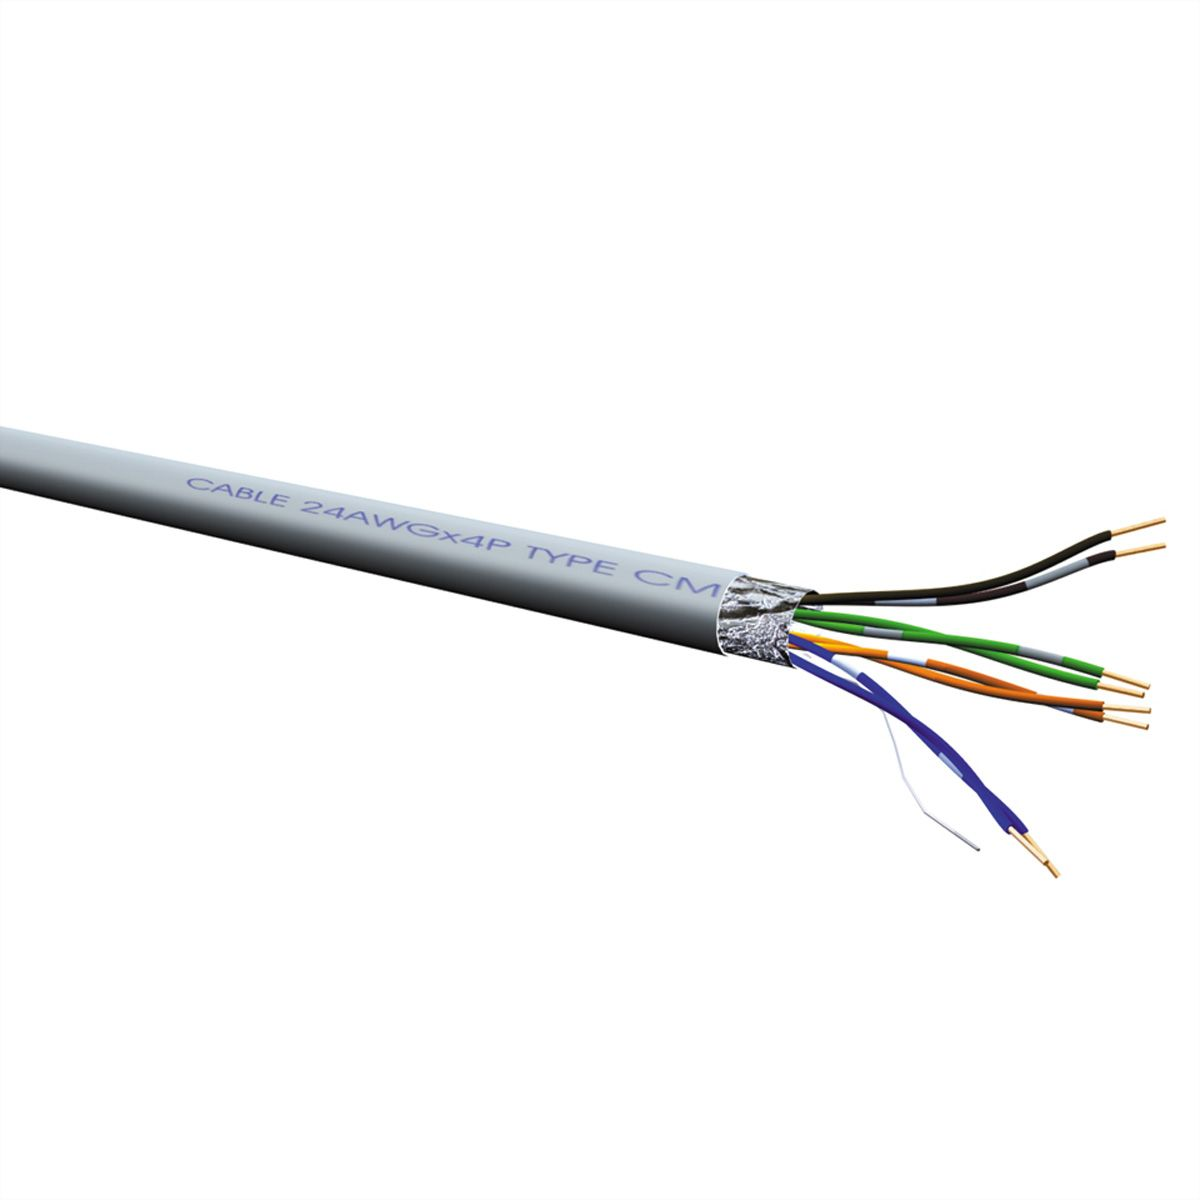 Roline Ftp Cable Cat5e Stranded Wire 100 M Secomp International Panel Wiring Diagram On Cat 5e Shielded Ether